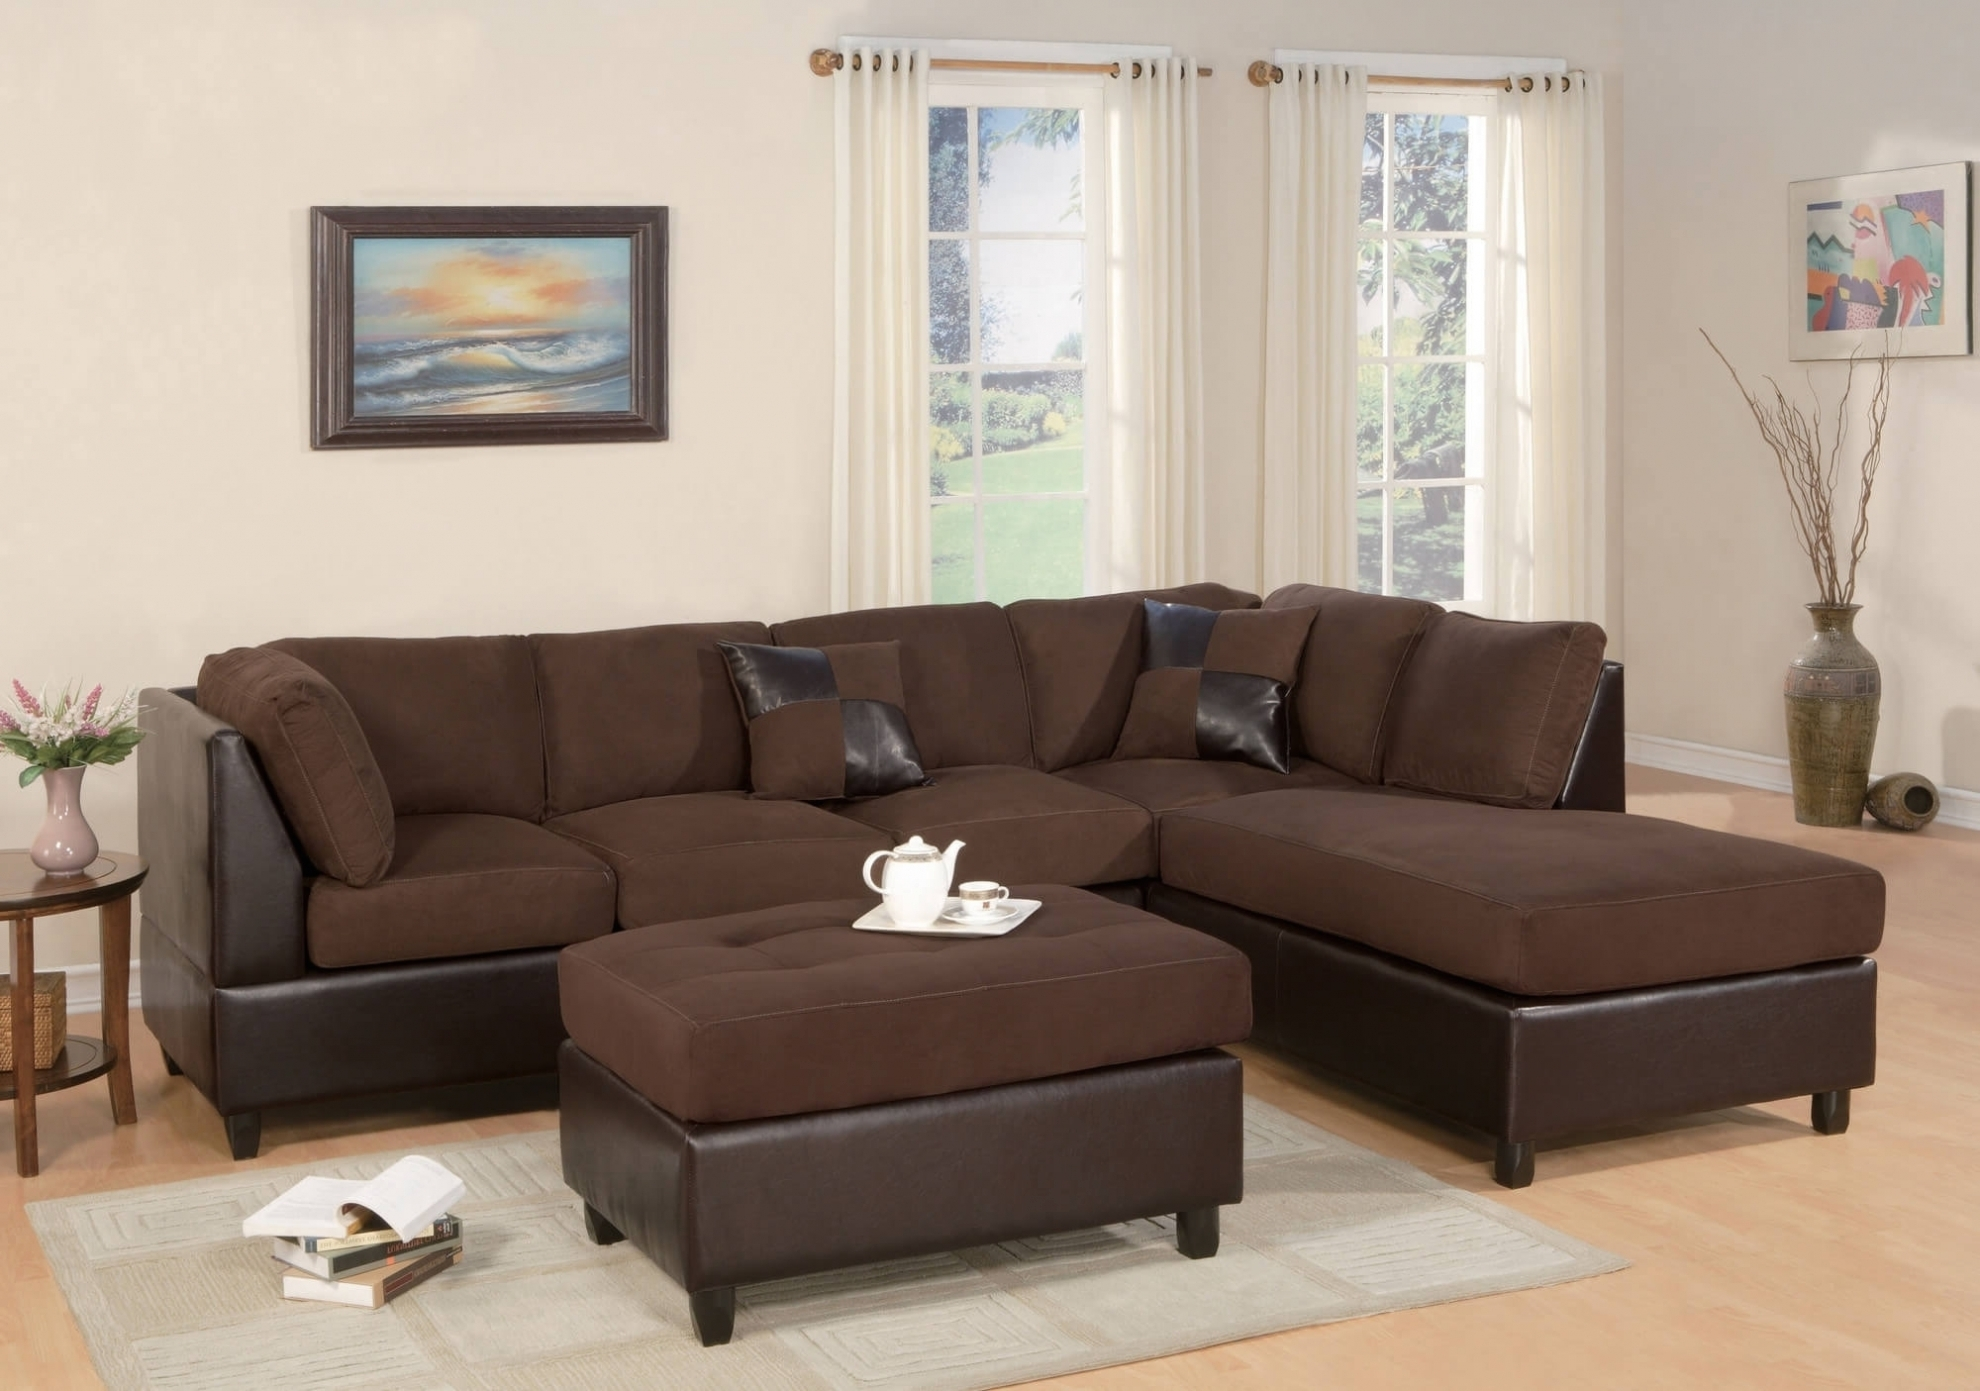 Home Design: Remarkable Photos Sectional Sofas Under $1000 Intended For Sectional Sofas Under  (Image 8 of 10)